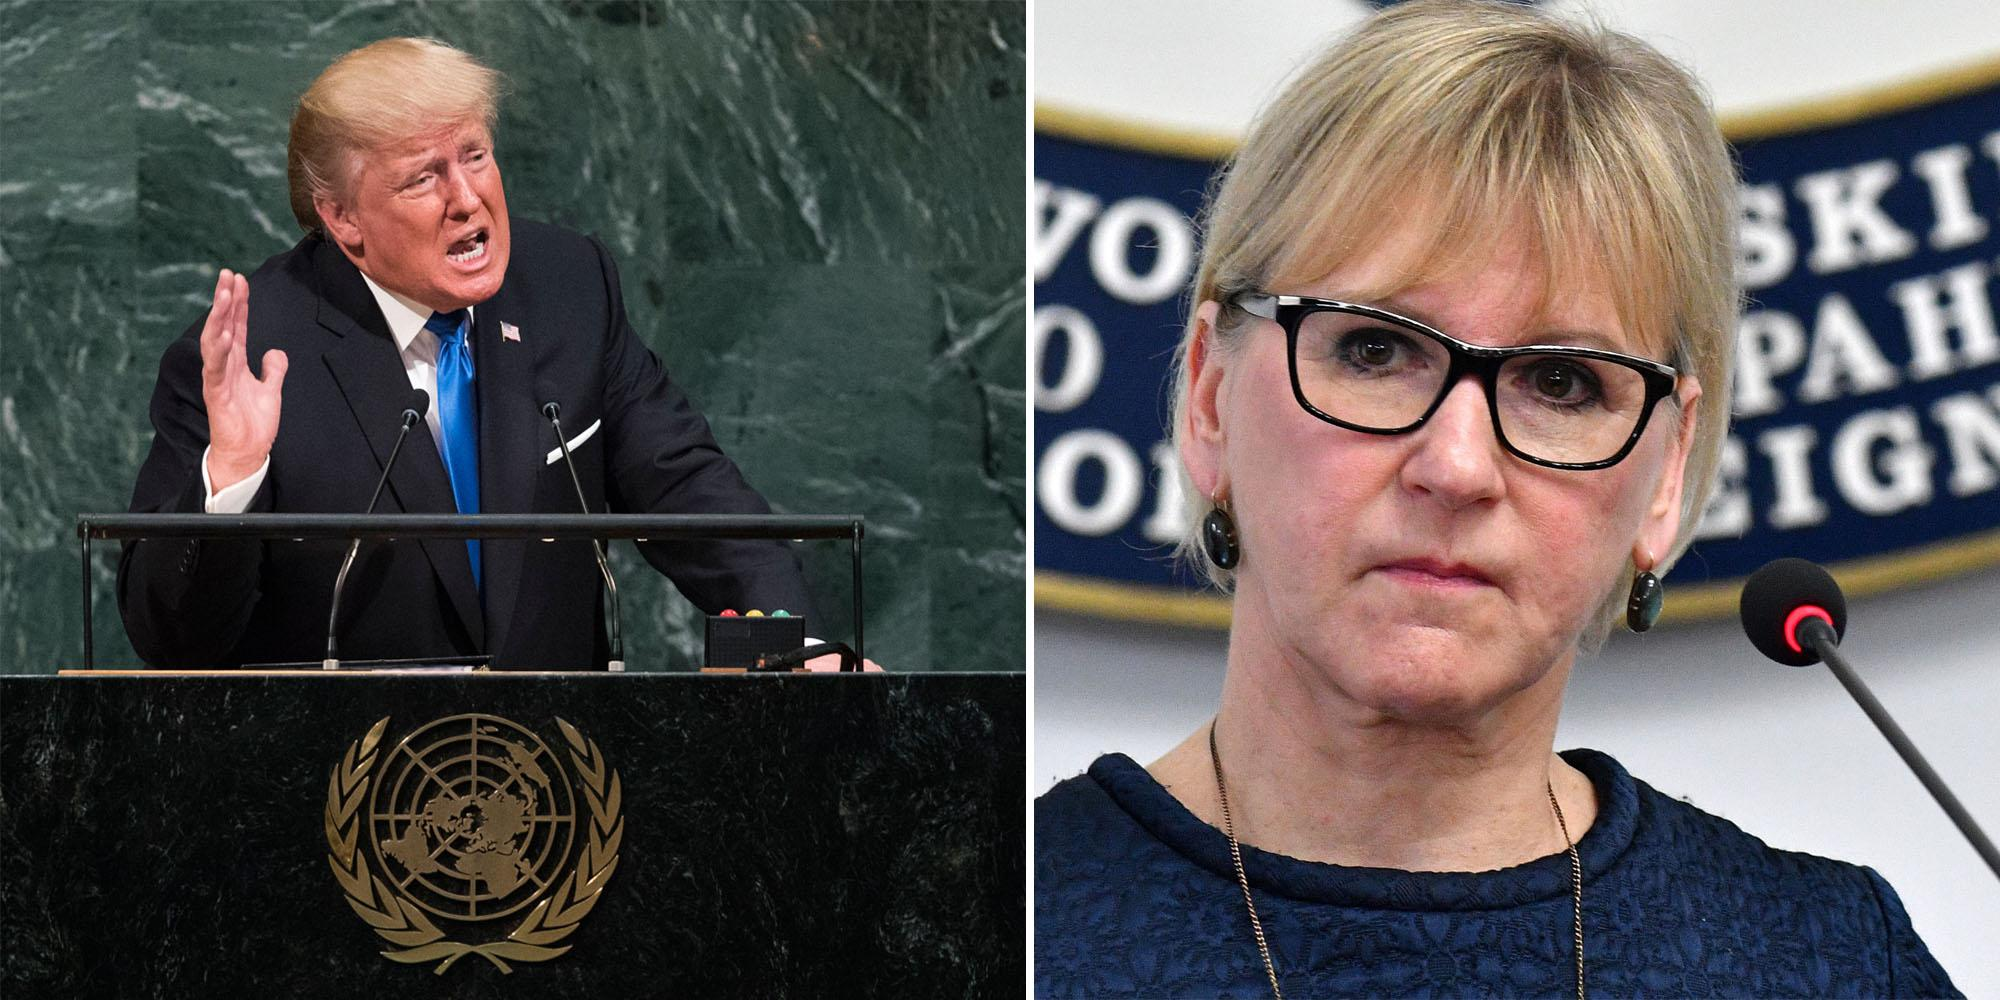 Sweden's foreign minister is the only one who had an honest reaction to Trump's speech